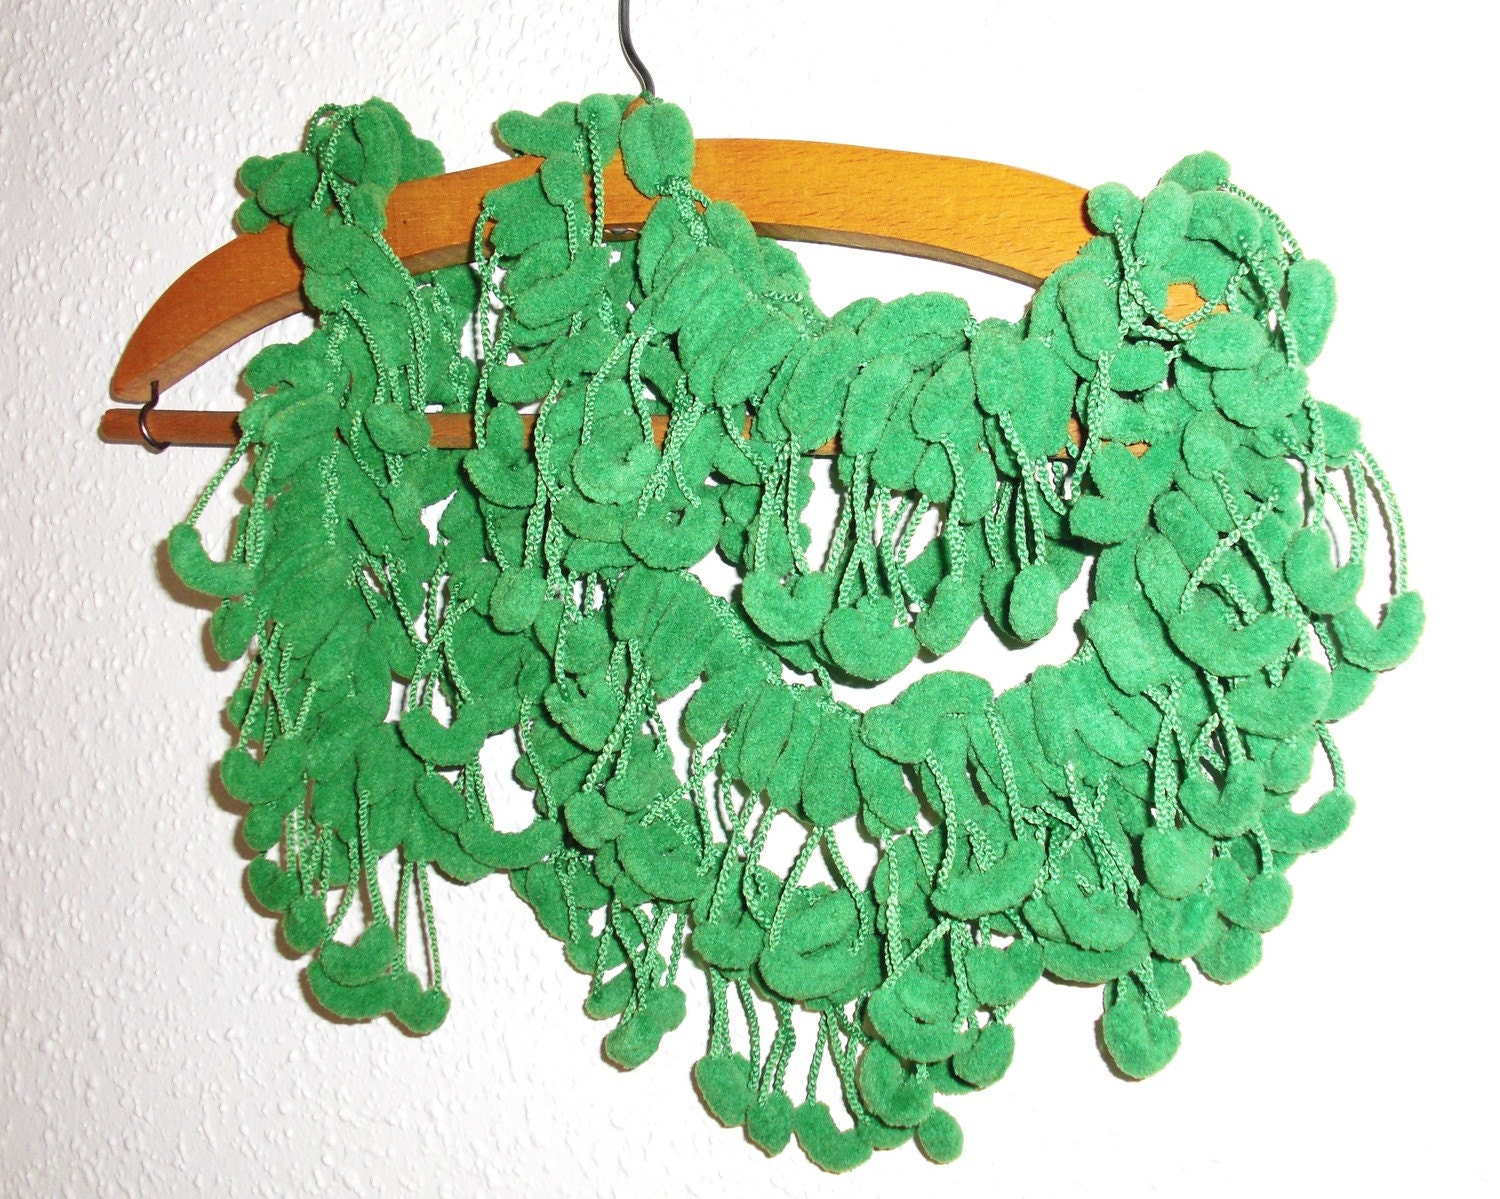 SPRING FASHION Grass Green  Mulberry Scarf No5 by Ebruk on Etsy from etsy.com